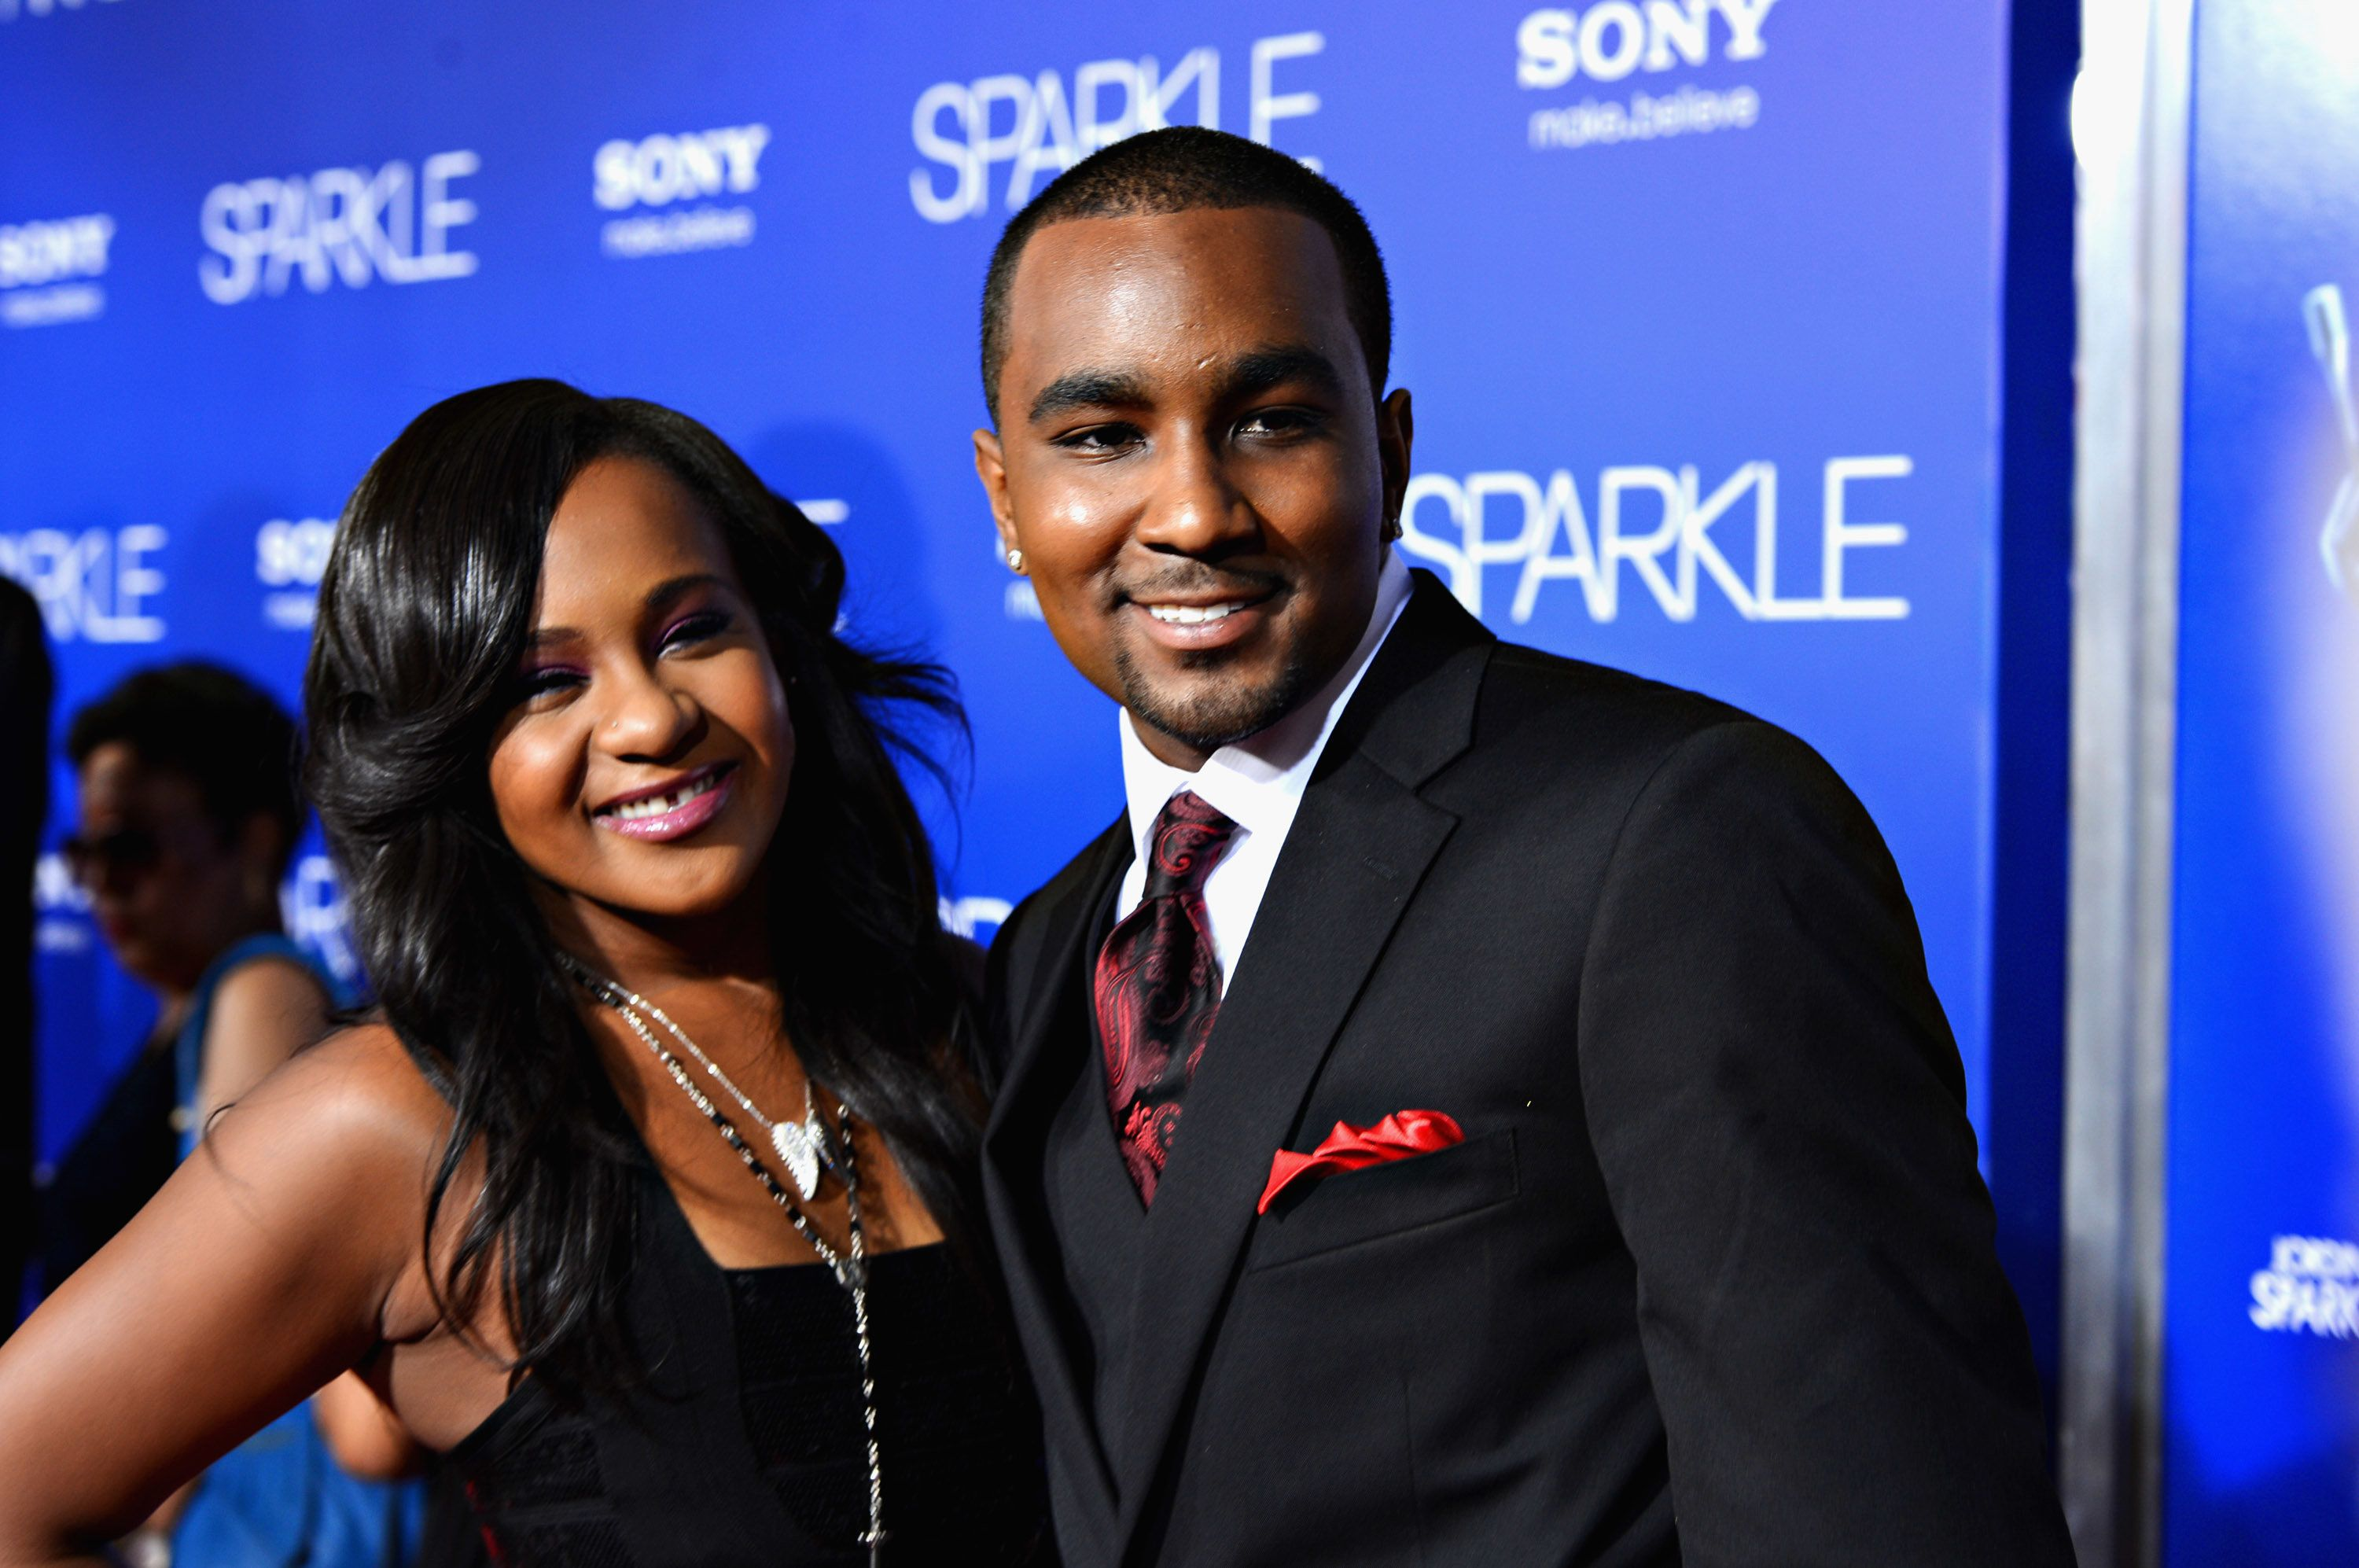 HOLLYWOOD, CA - AUGUST 16:  Bobbi Kristina Brown (R) and Nick Gordon arrive at Tri-Star Pictures' 'Sparkle' premiere at Grauman's Chinese Theatre on August 16, 2012 in Hollywood, California.  (Photo by Frazer Harrison/Getty Images)